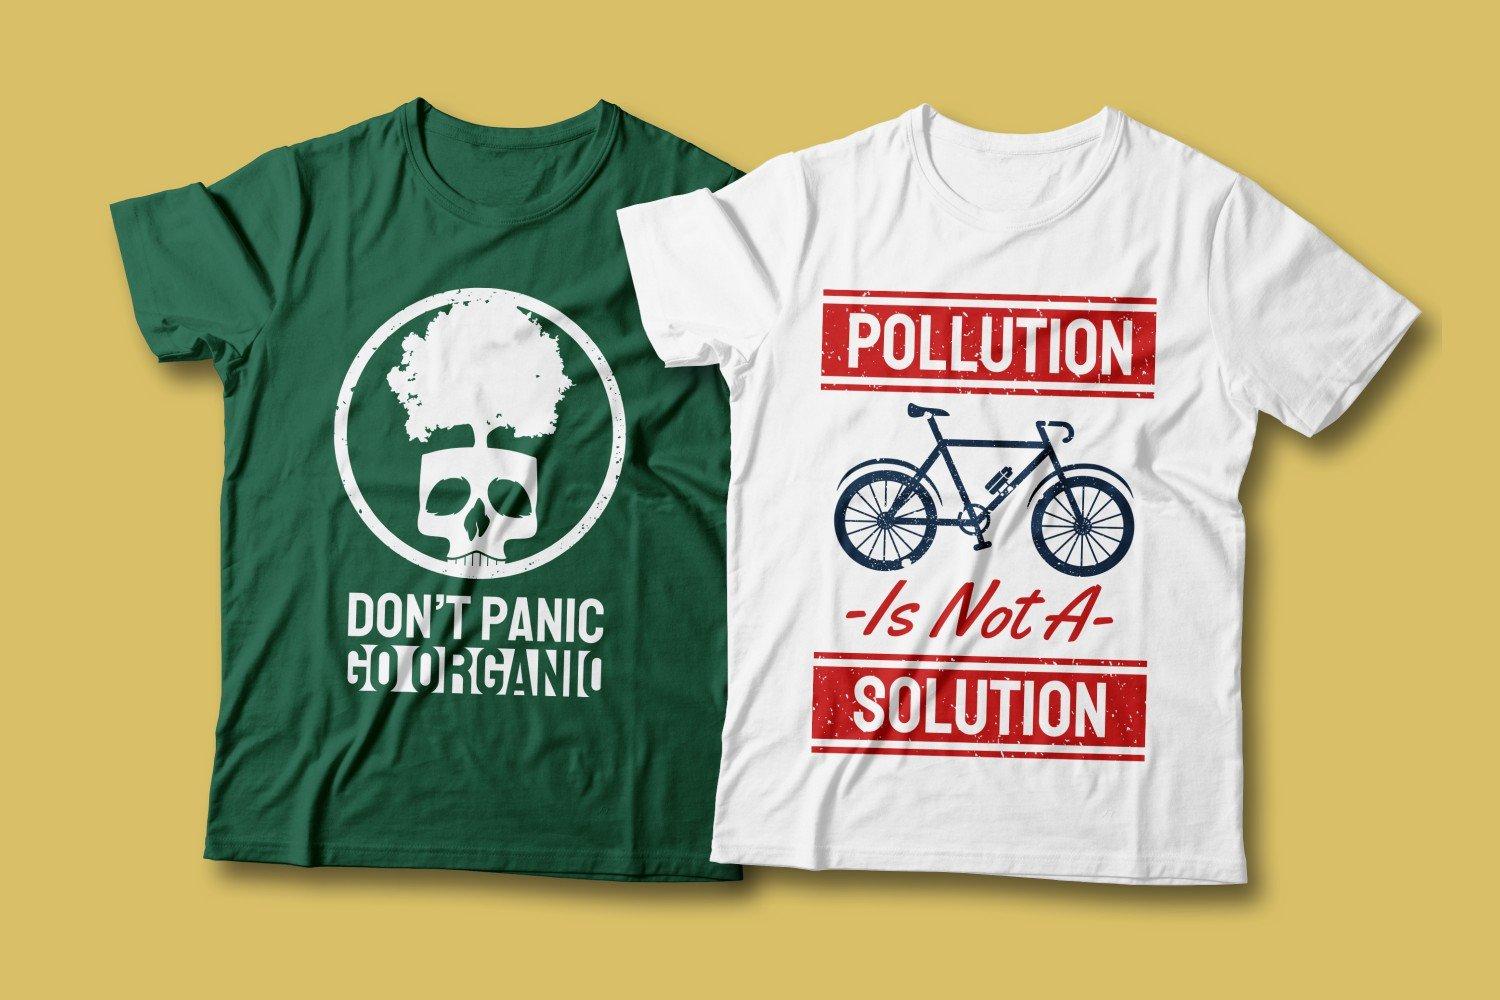 Two T-shirts - white and green. Both are about preserving the environment.